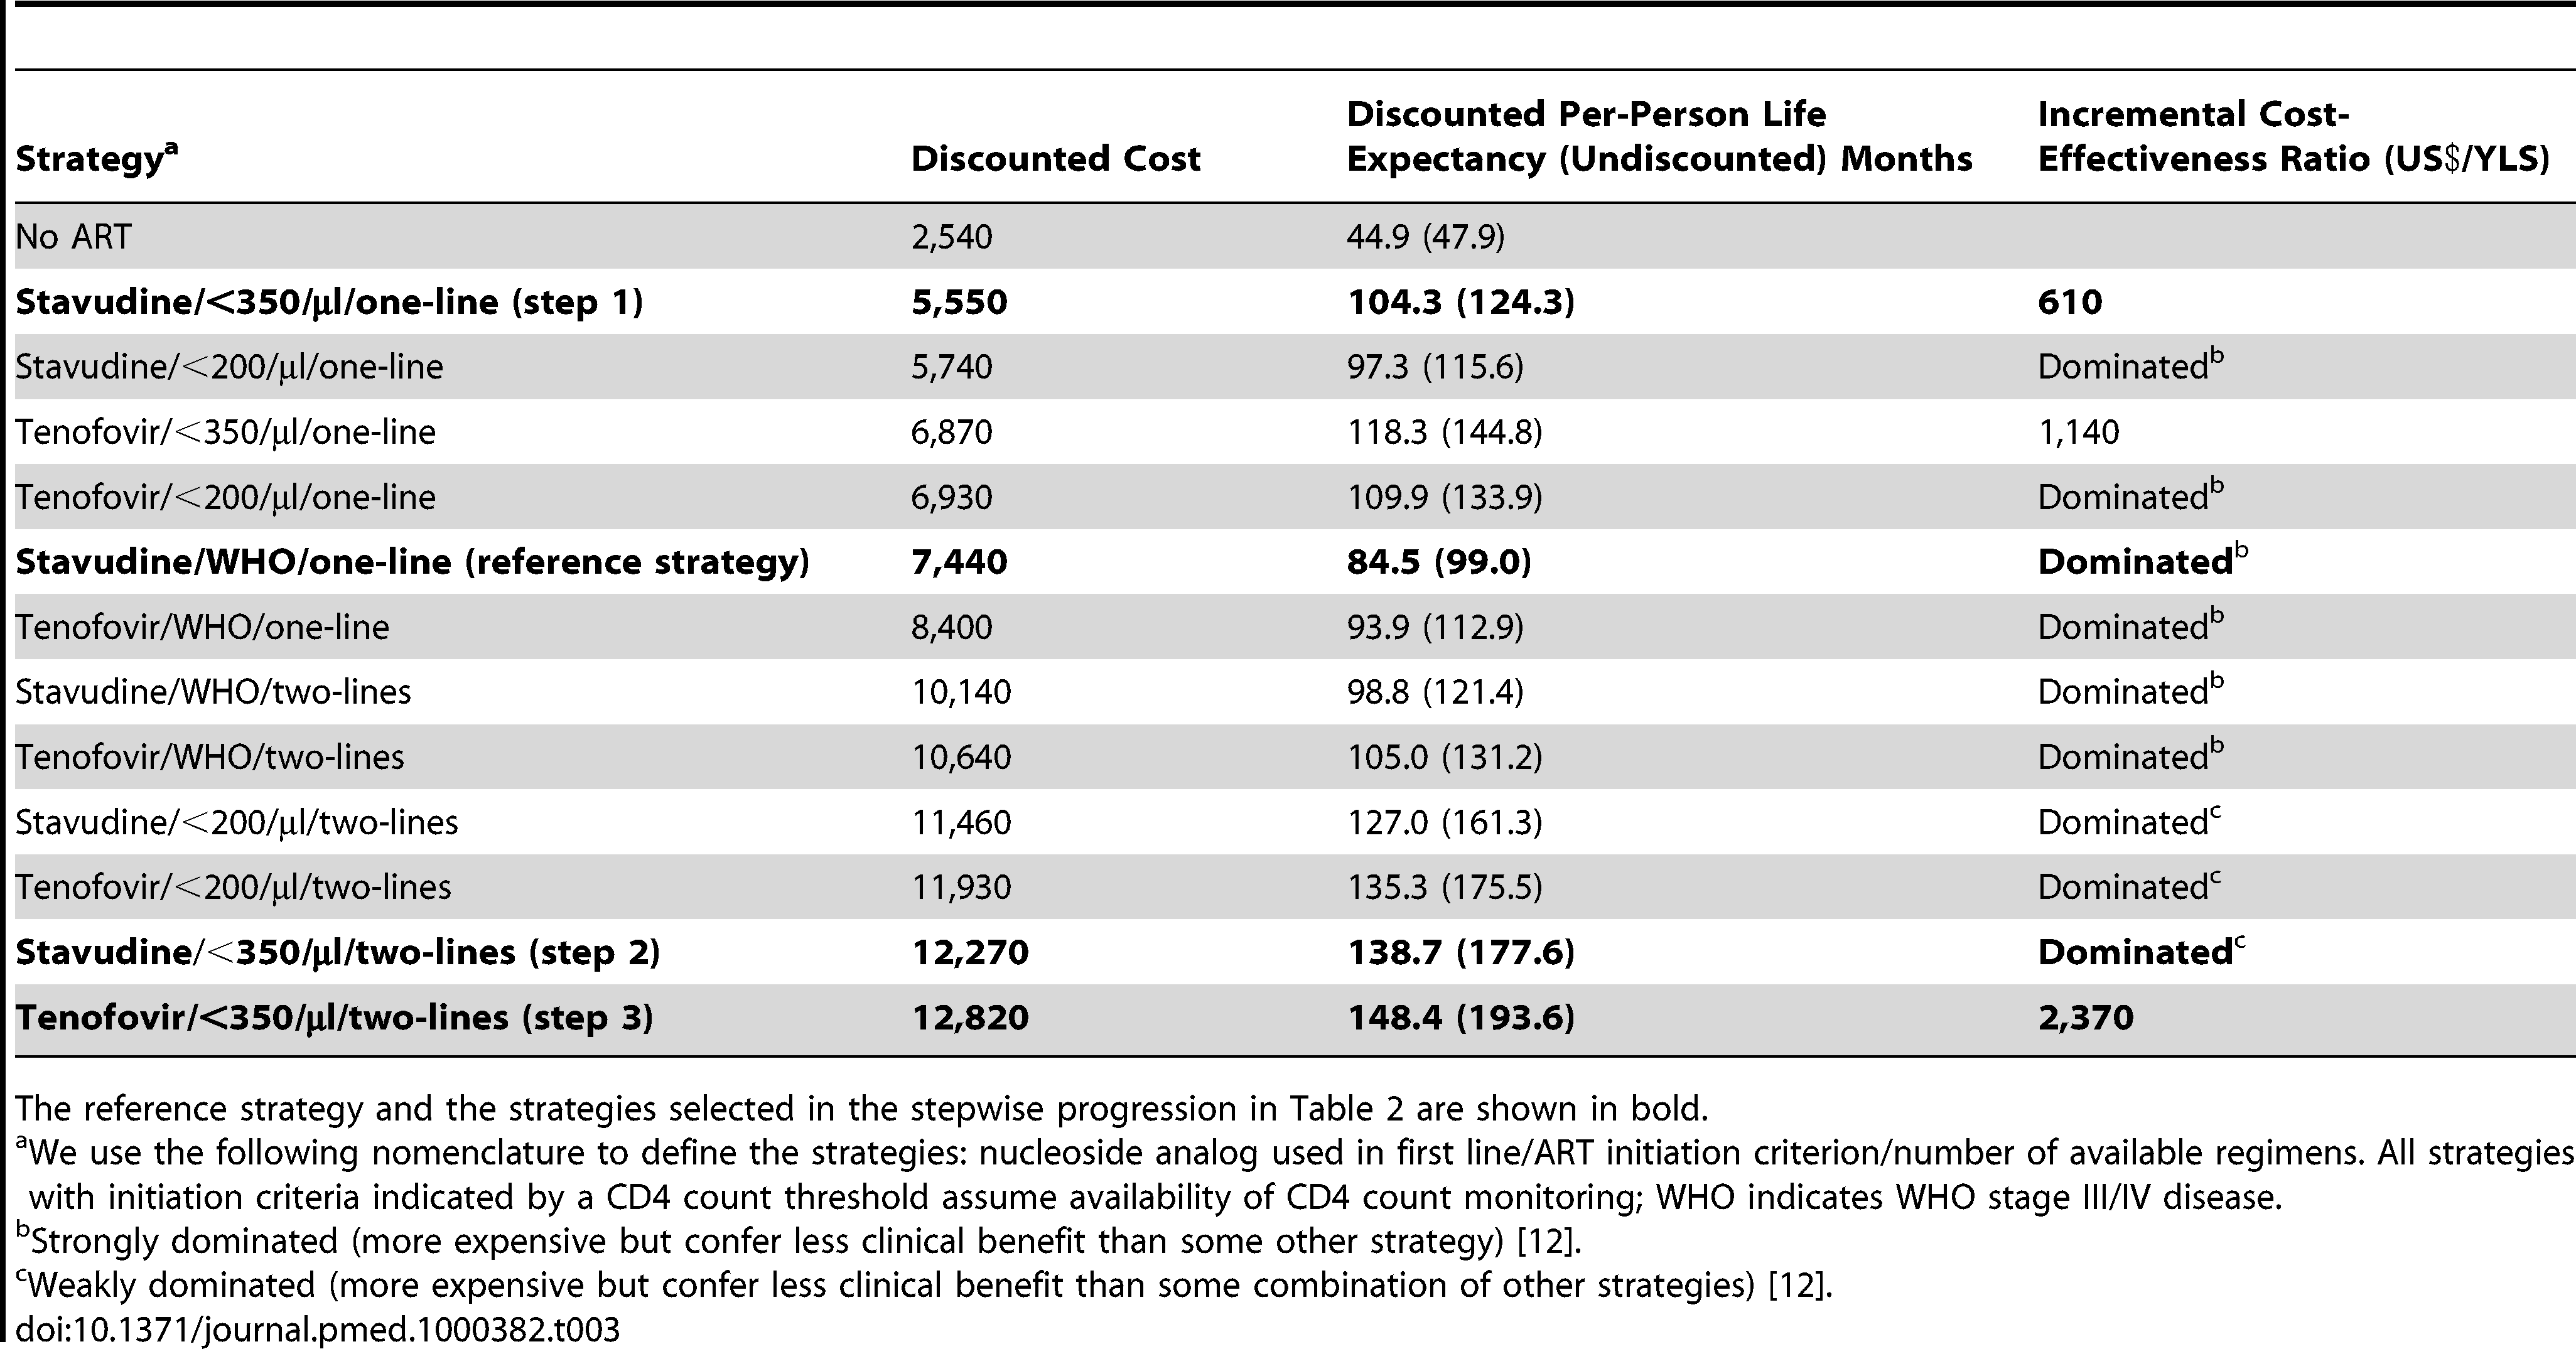 Life expectancy, costs, and incremental cost-effectiveness ratios of the 12 possible stepwise combinations (and no ART) from the reference strategy to full implementation of 2010 WHO HIV treatment guidelines.